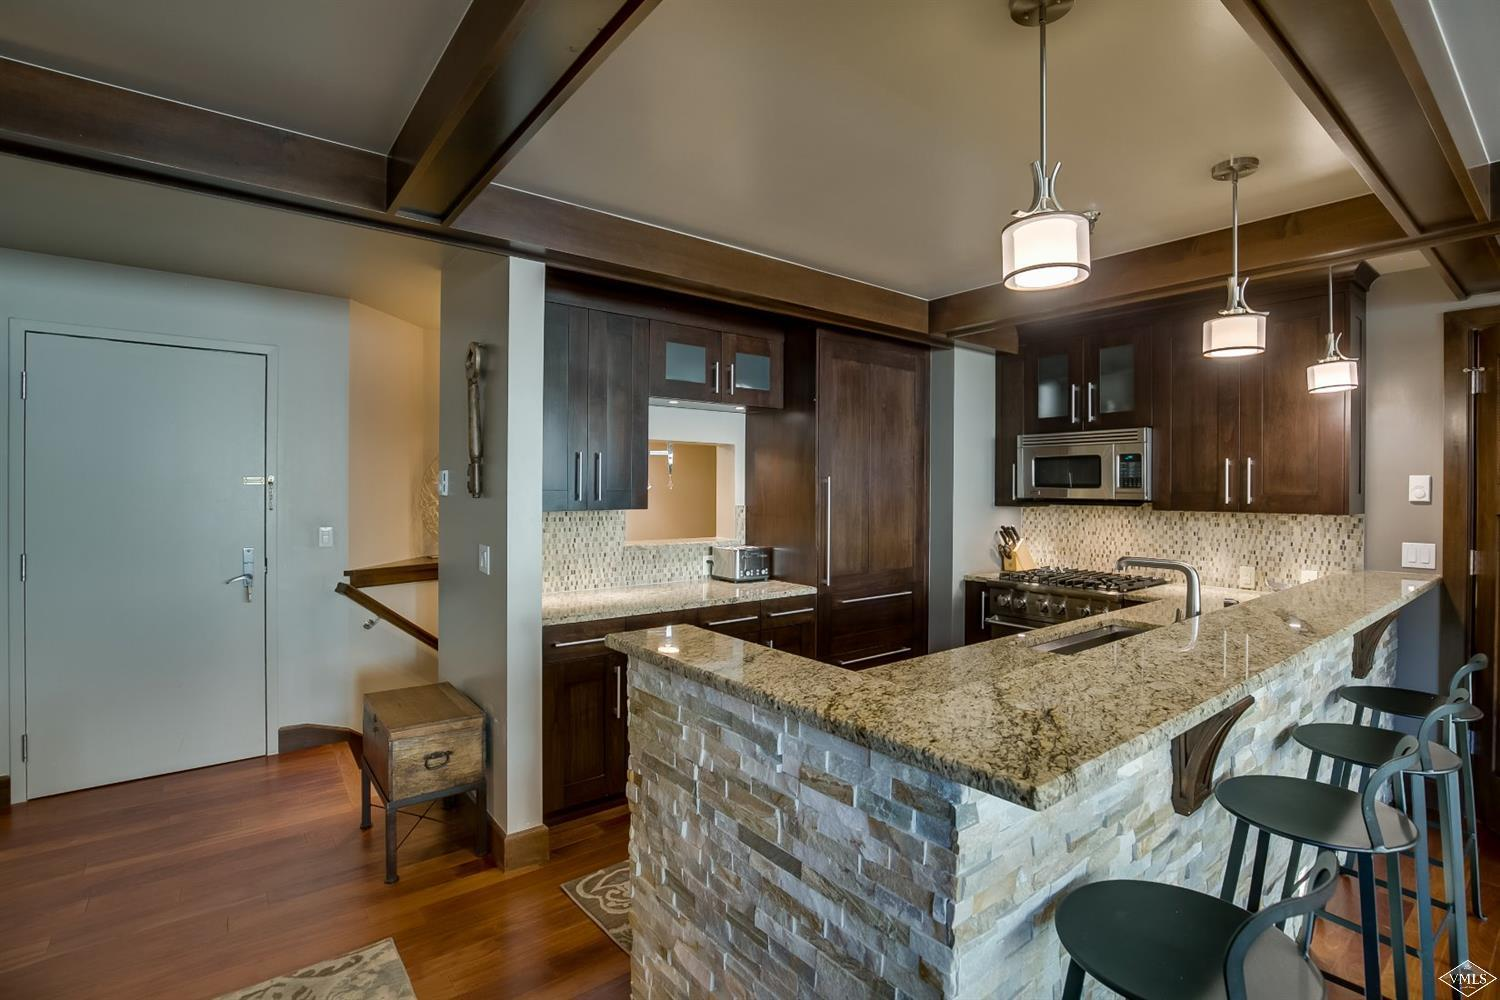 1310 Westhaven Drive, R4, Vail, CO 81657 Property Photo - Vail, CO real estate listing